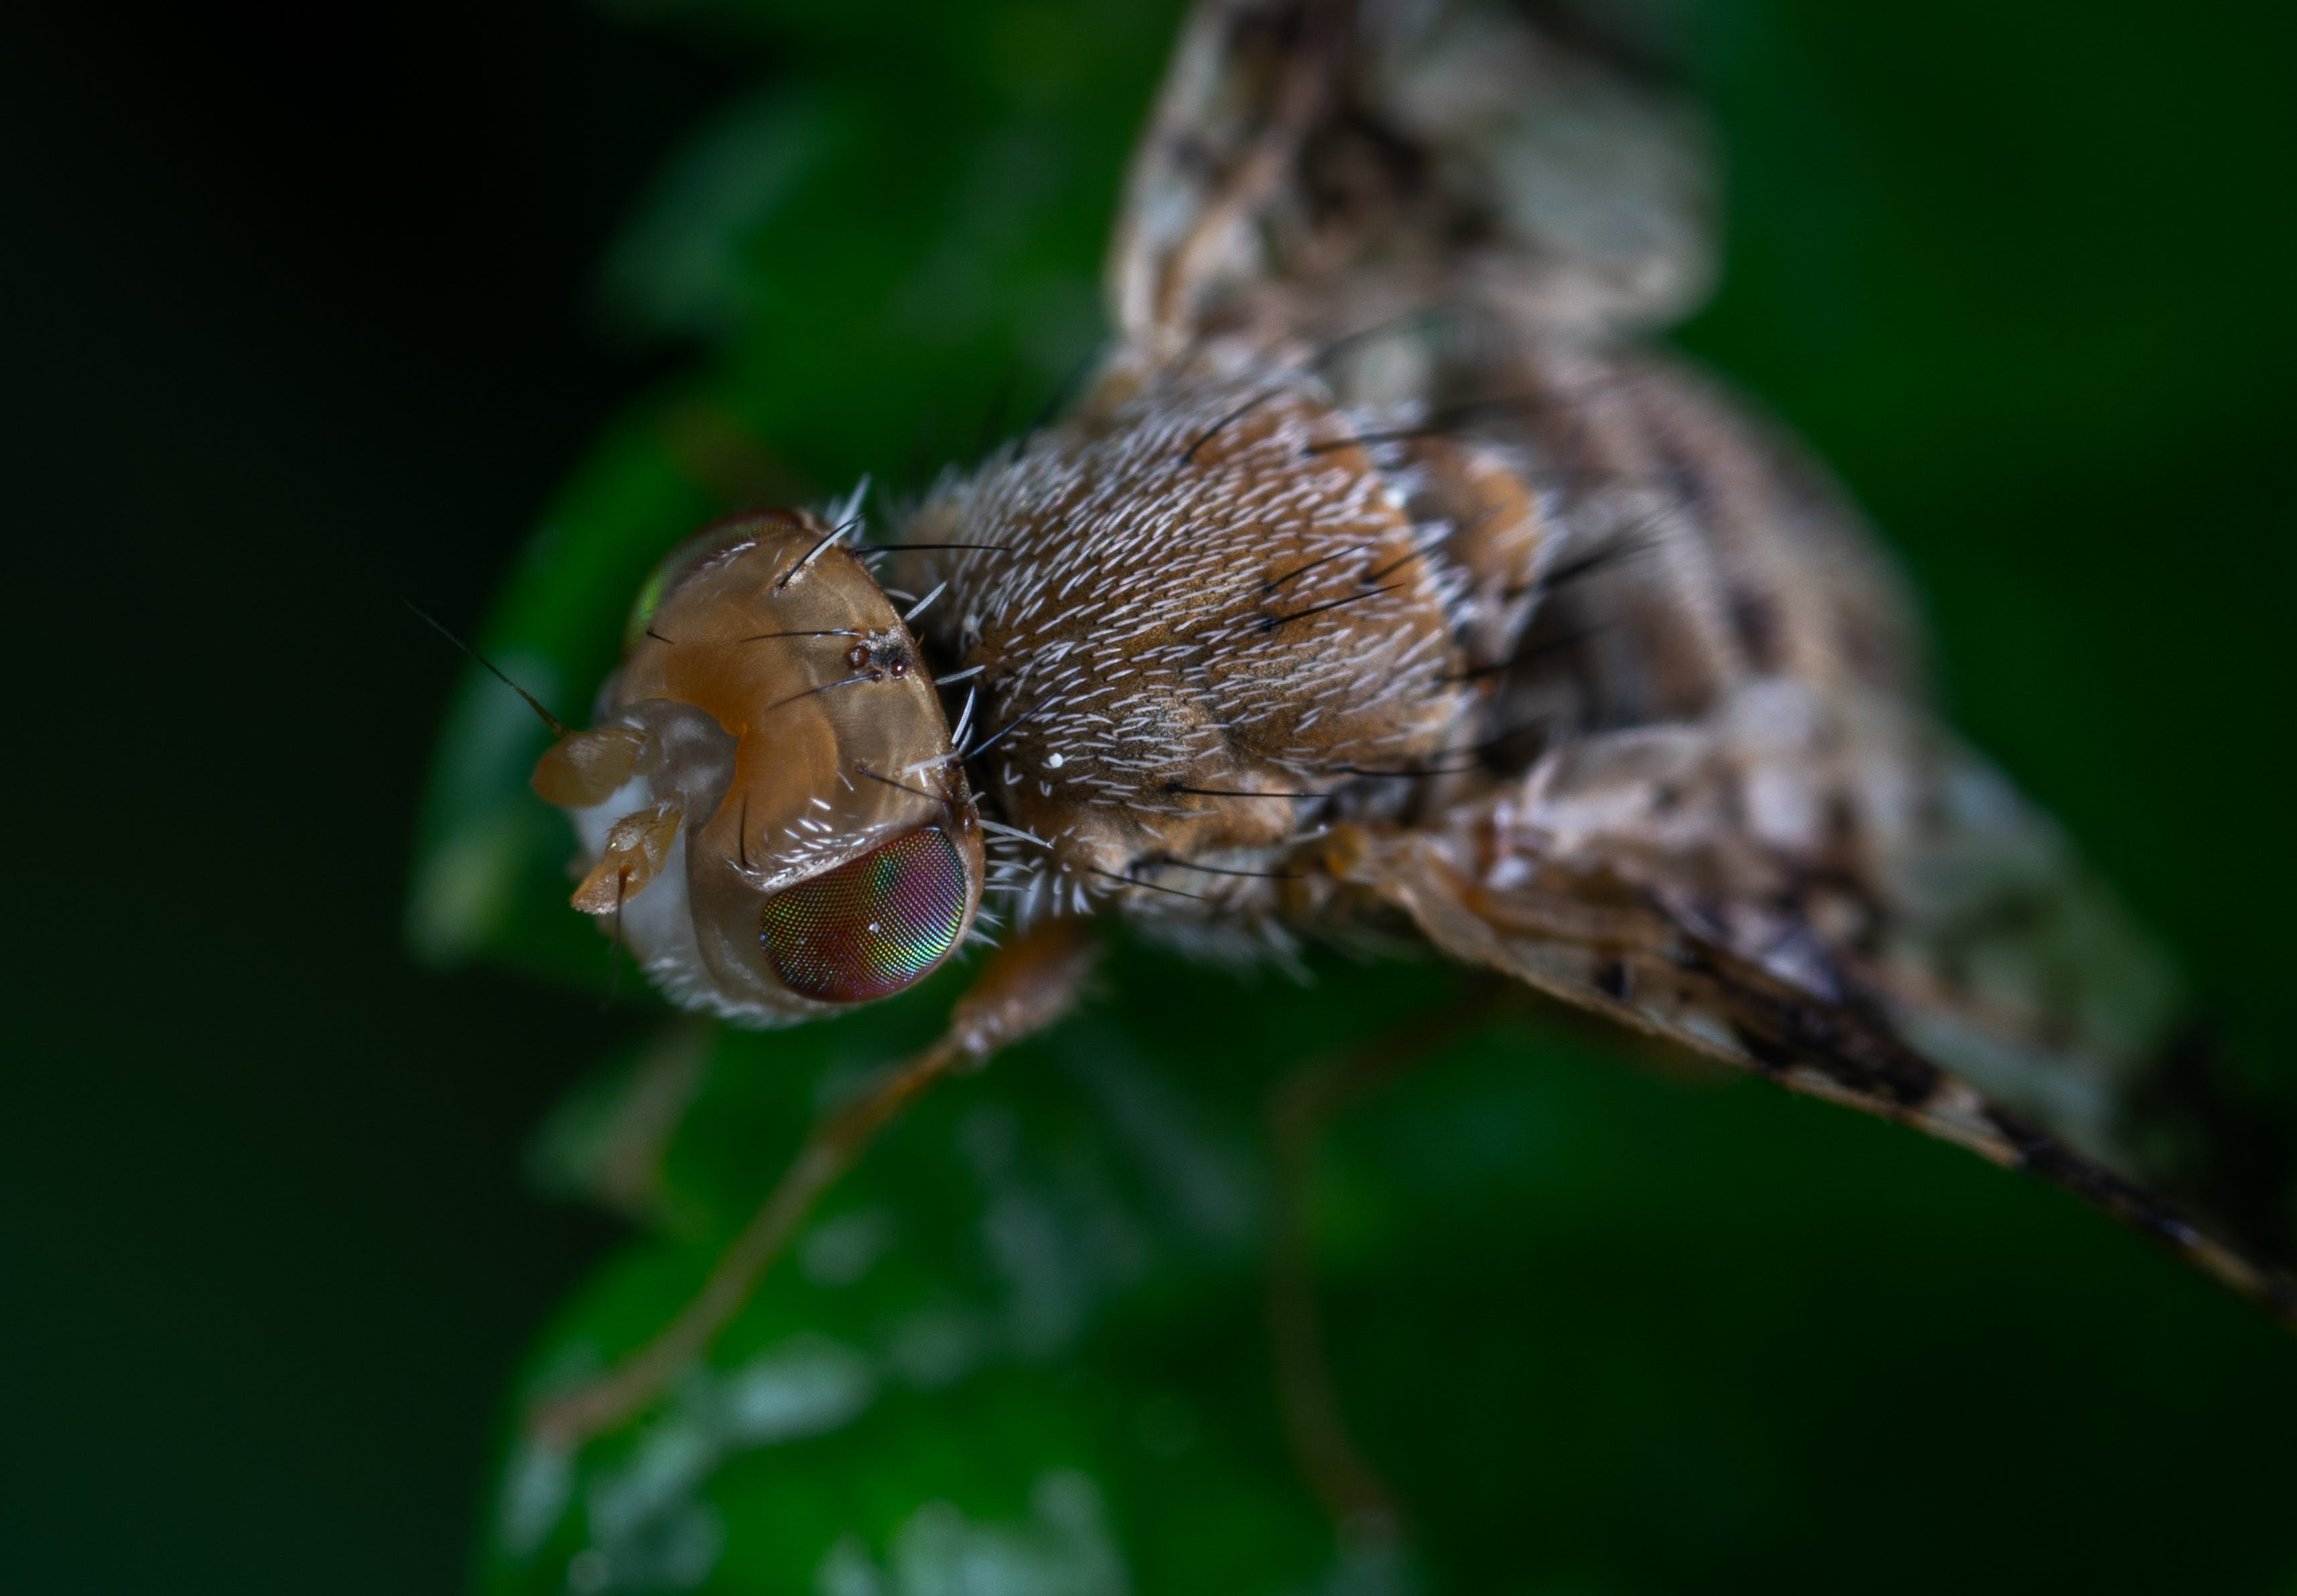 Brown Fly Perched On Green Leaf In Close-up Photography